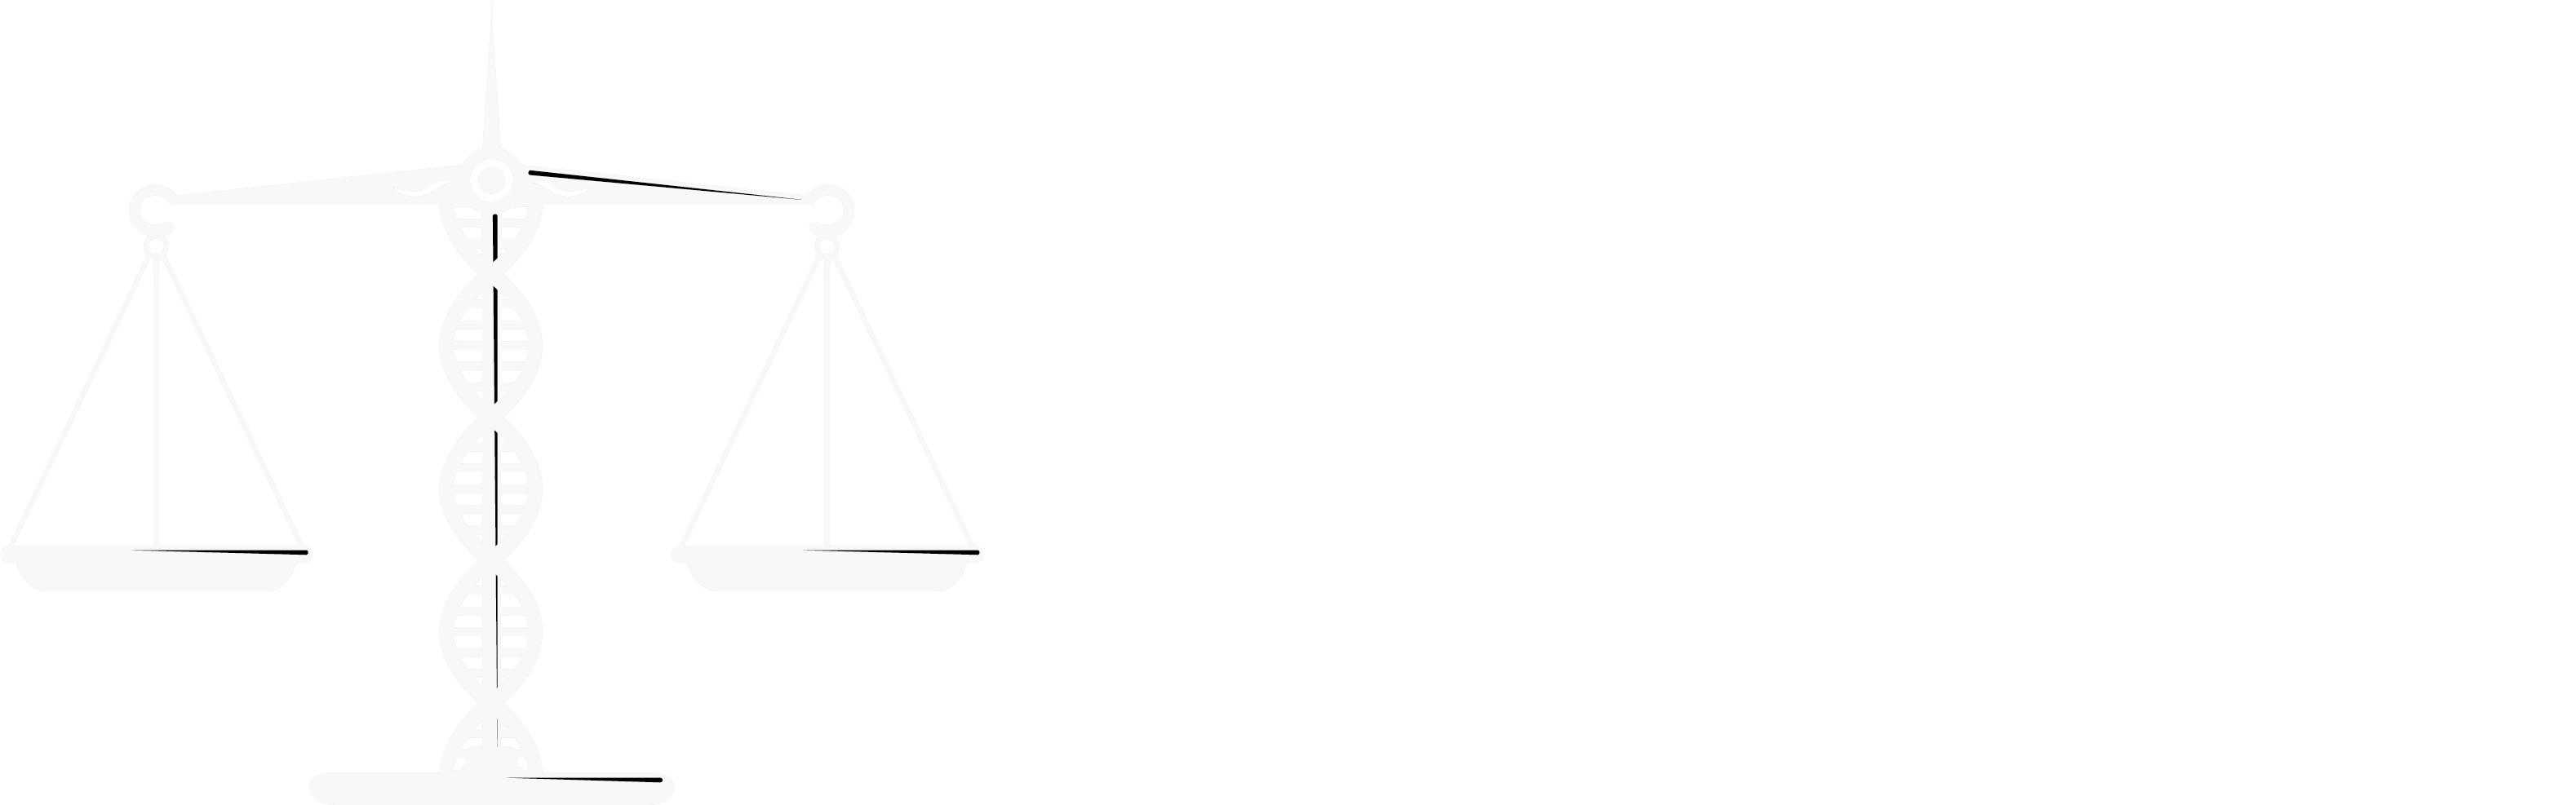 Forensic Genealogy for Law Enforcement